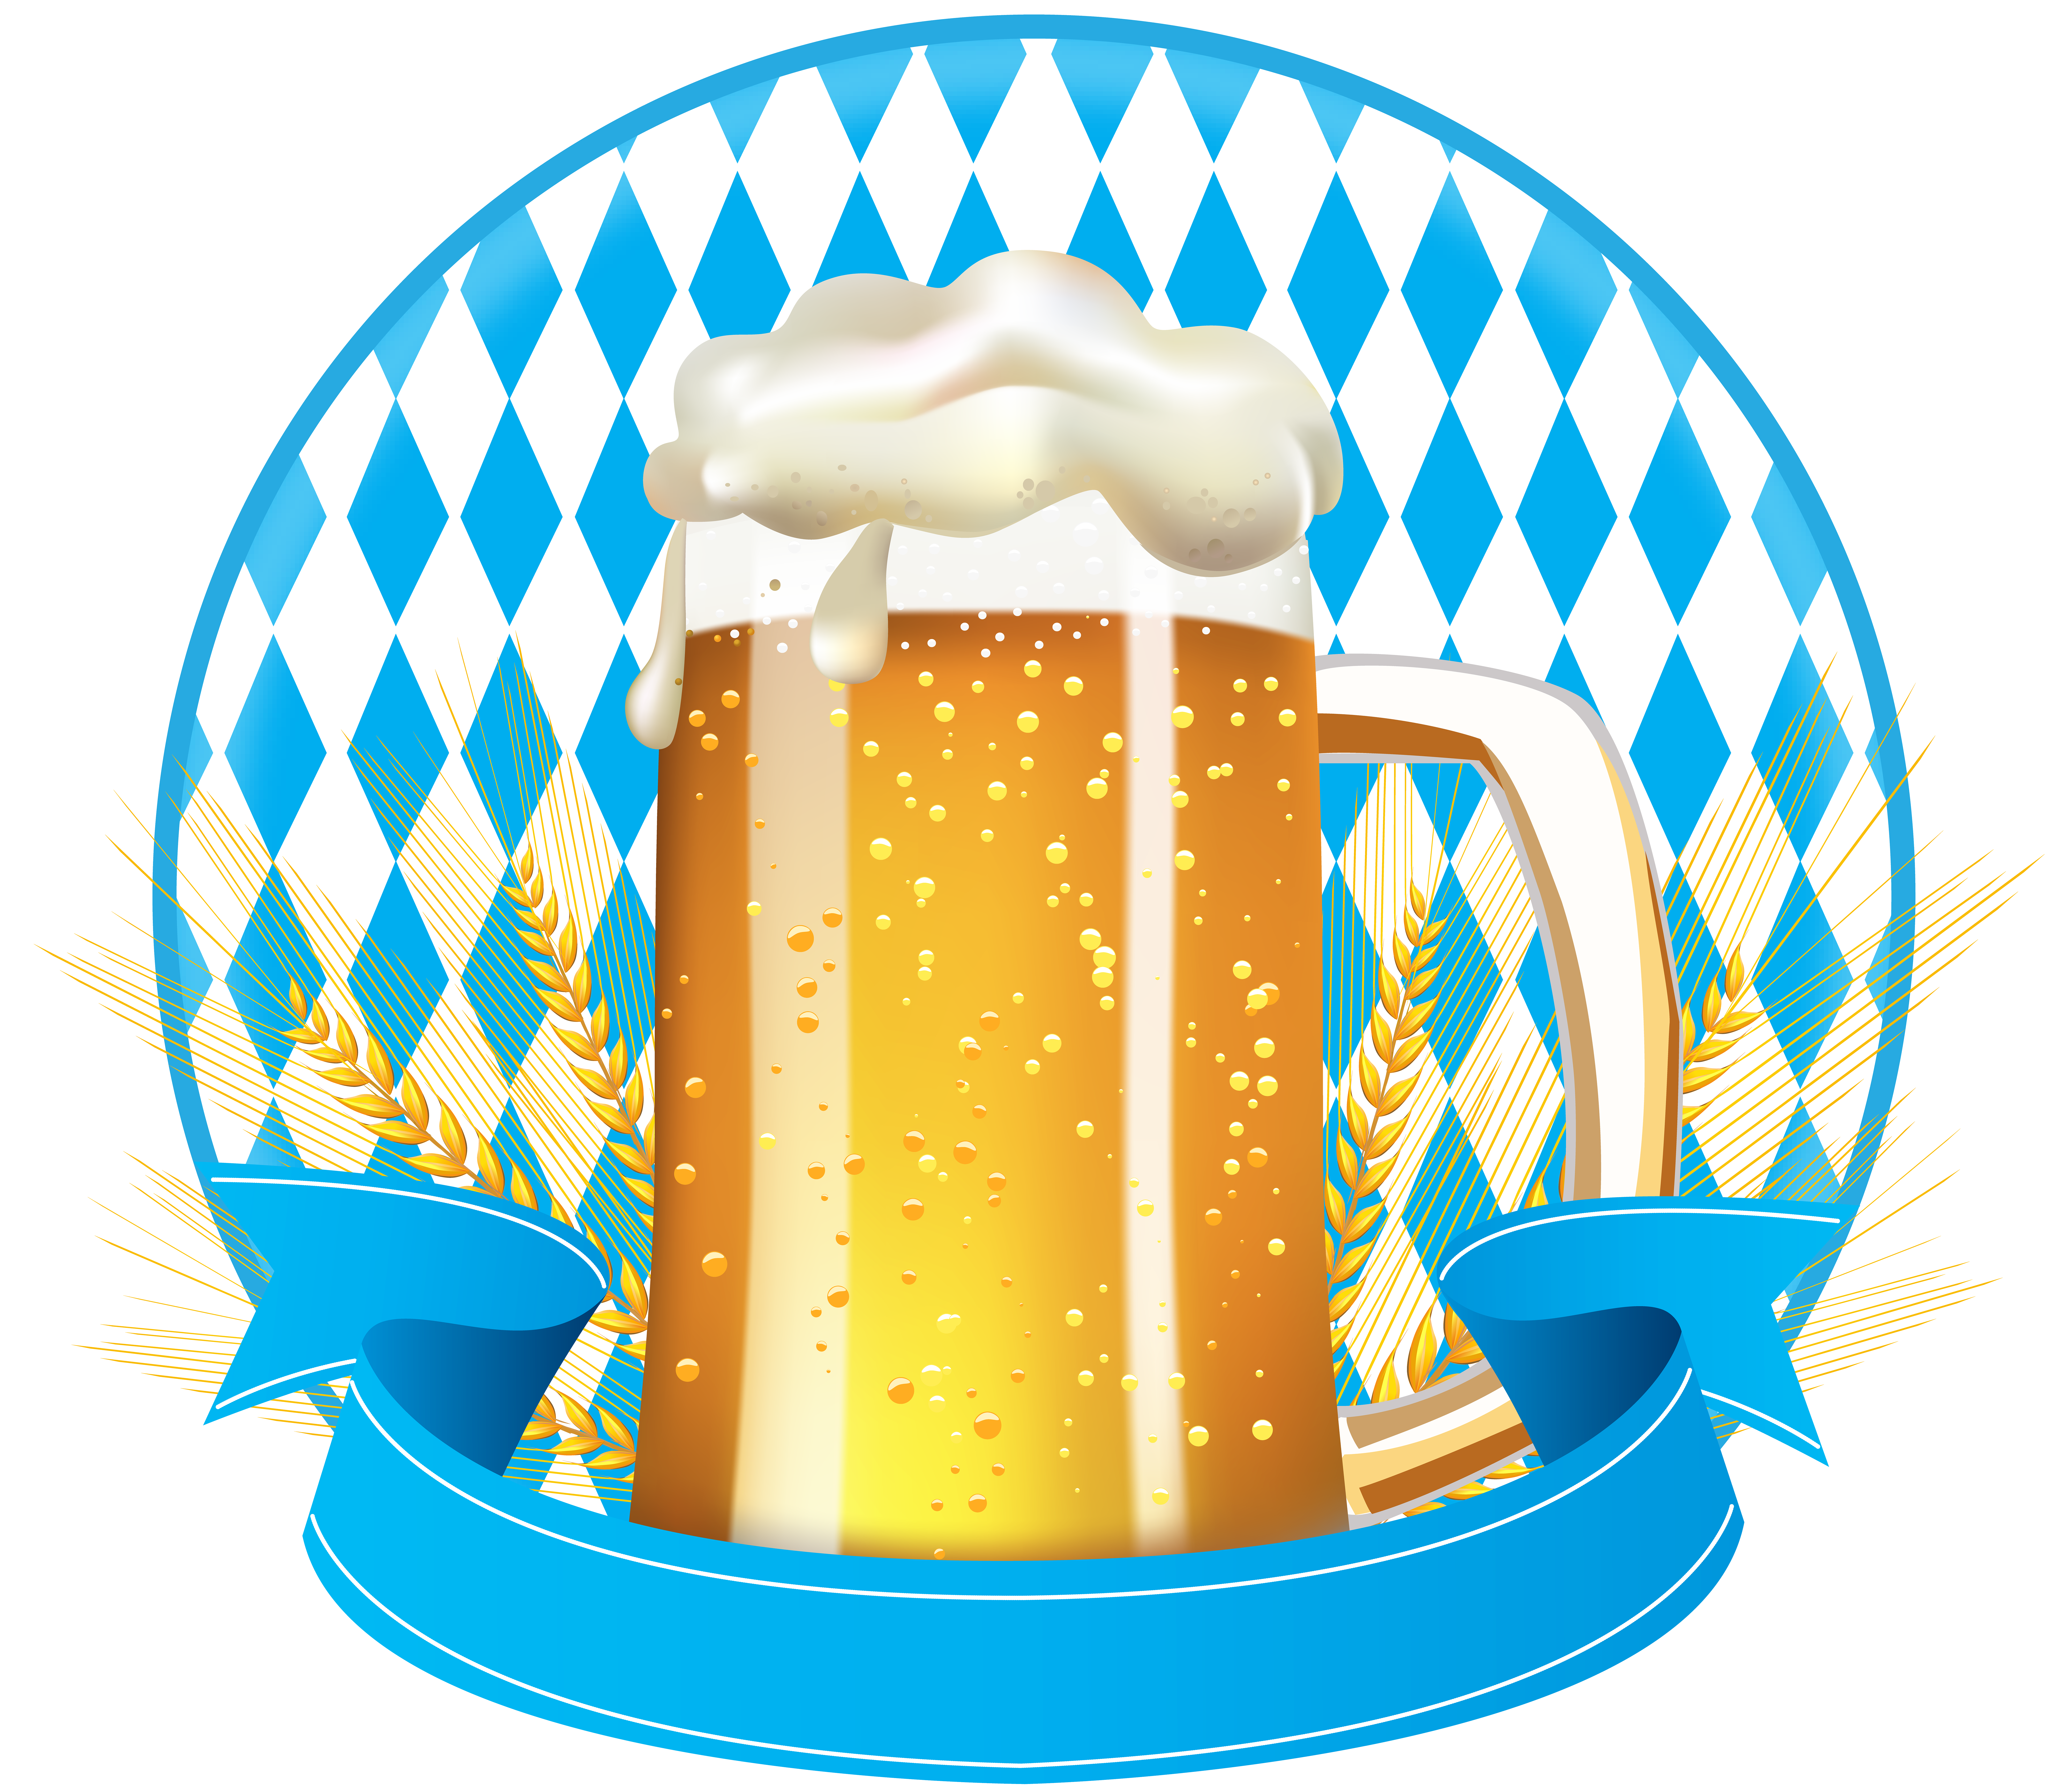 Field clipart banner. Oktoberfest with beer clip